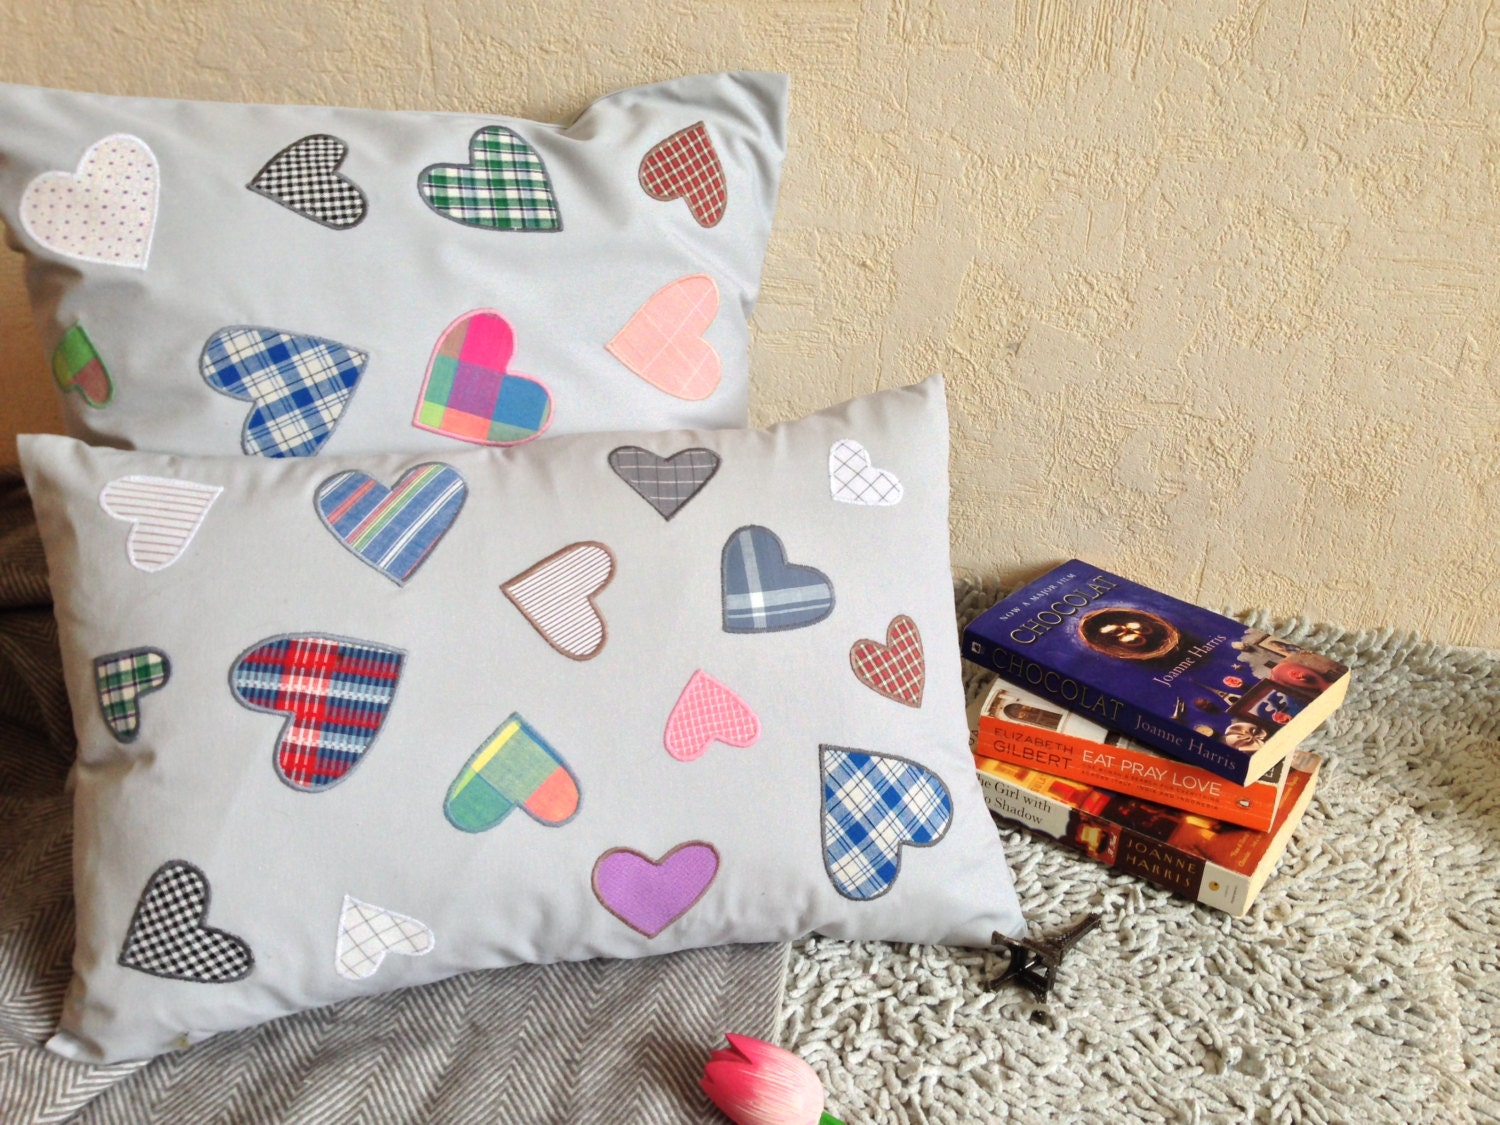 Uncategorized Unique Pillowcases designer pillow with hearts cover 20x20 cute pillows nursery pillowcases kids